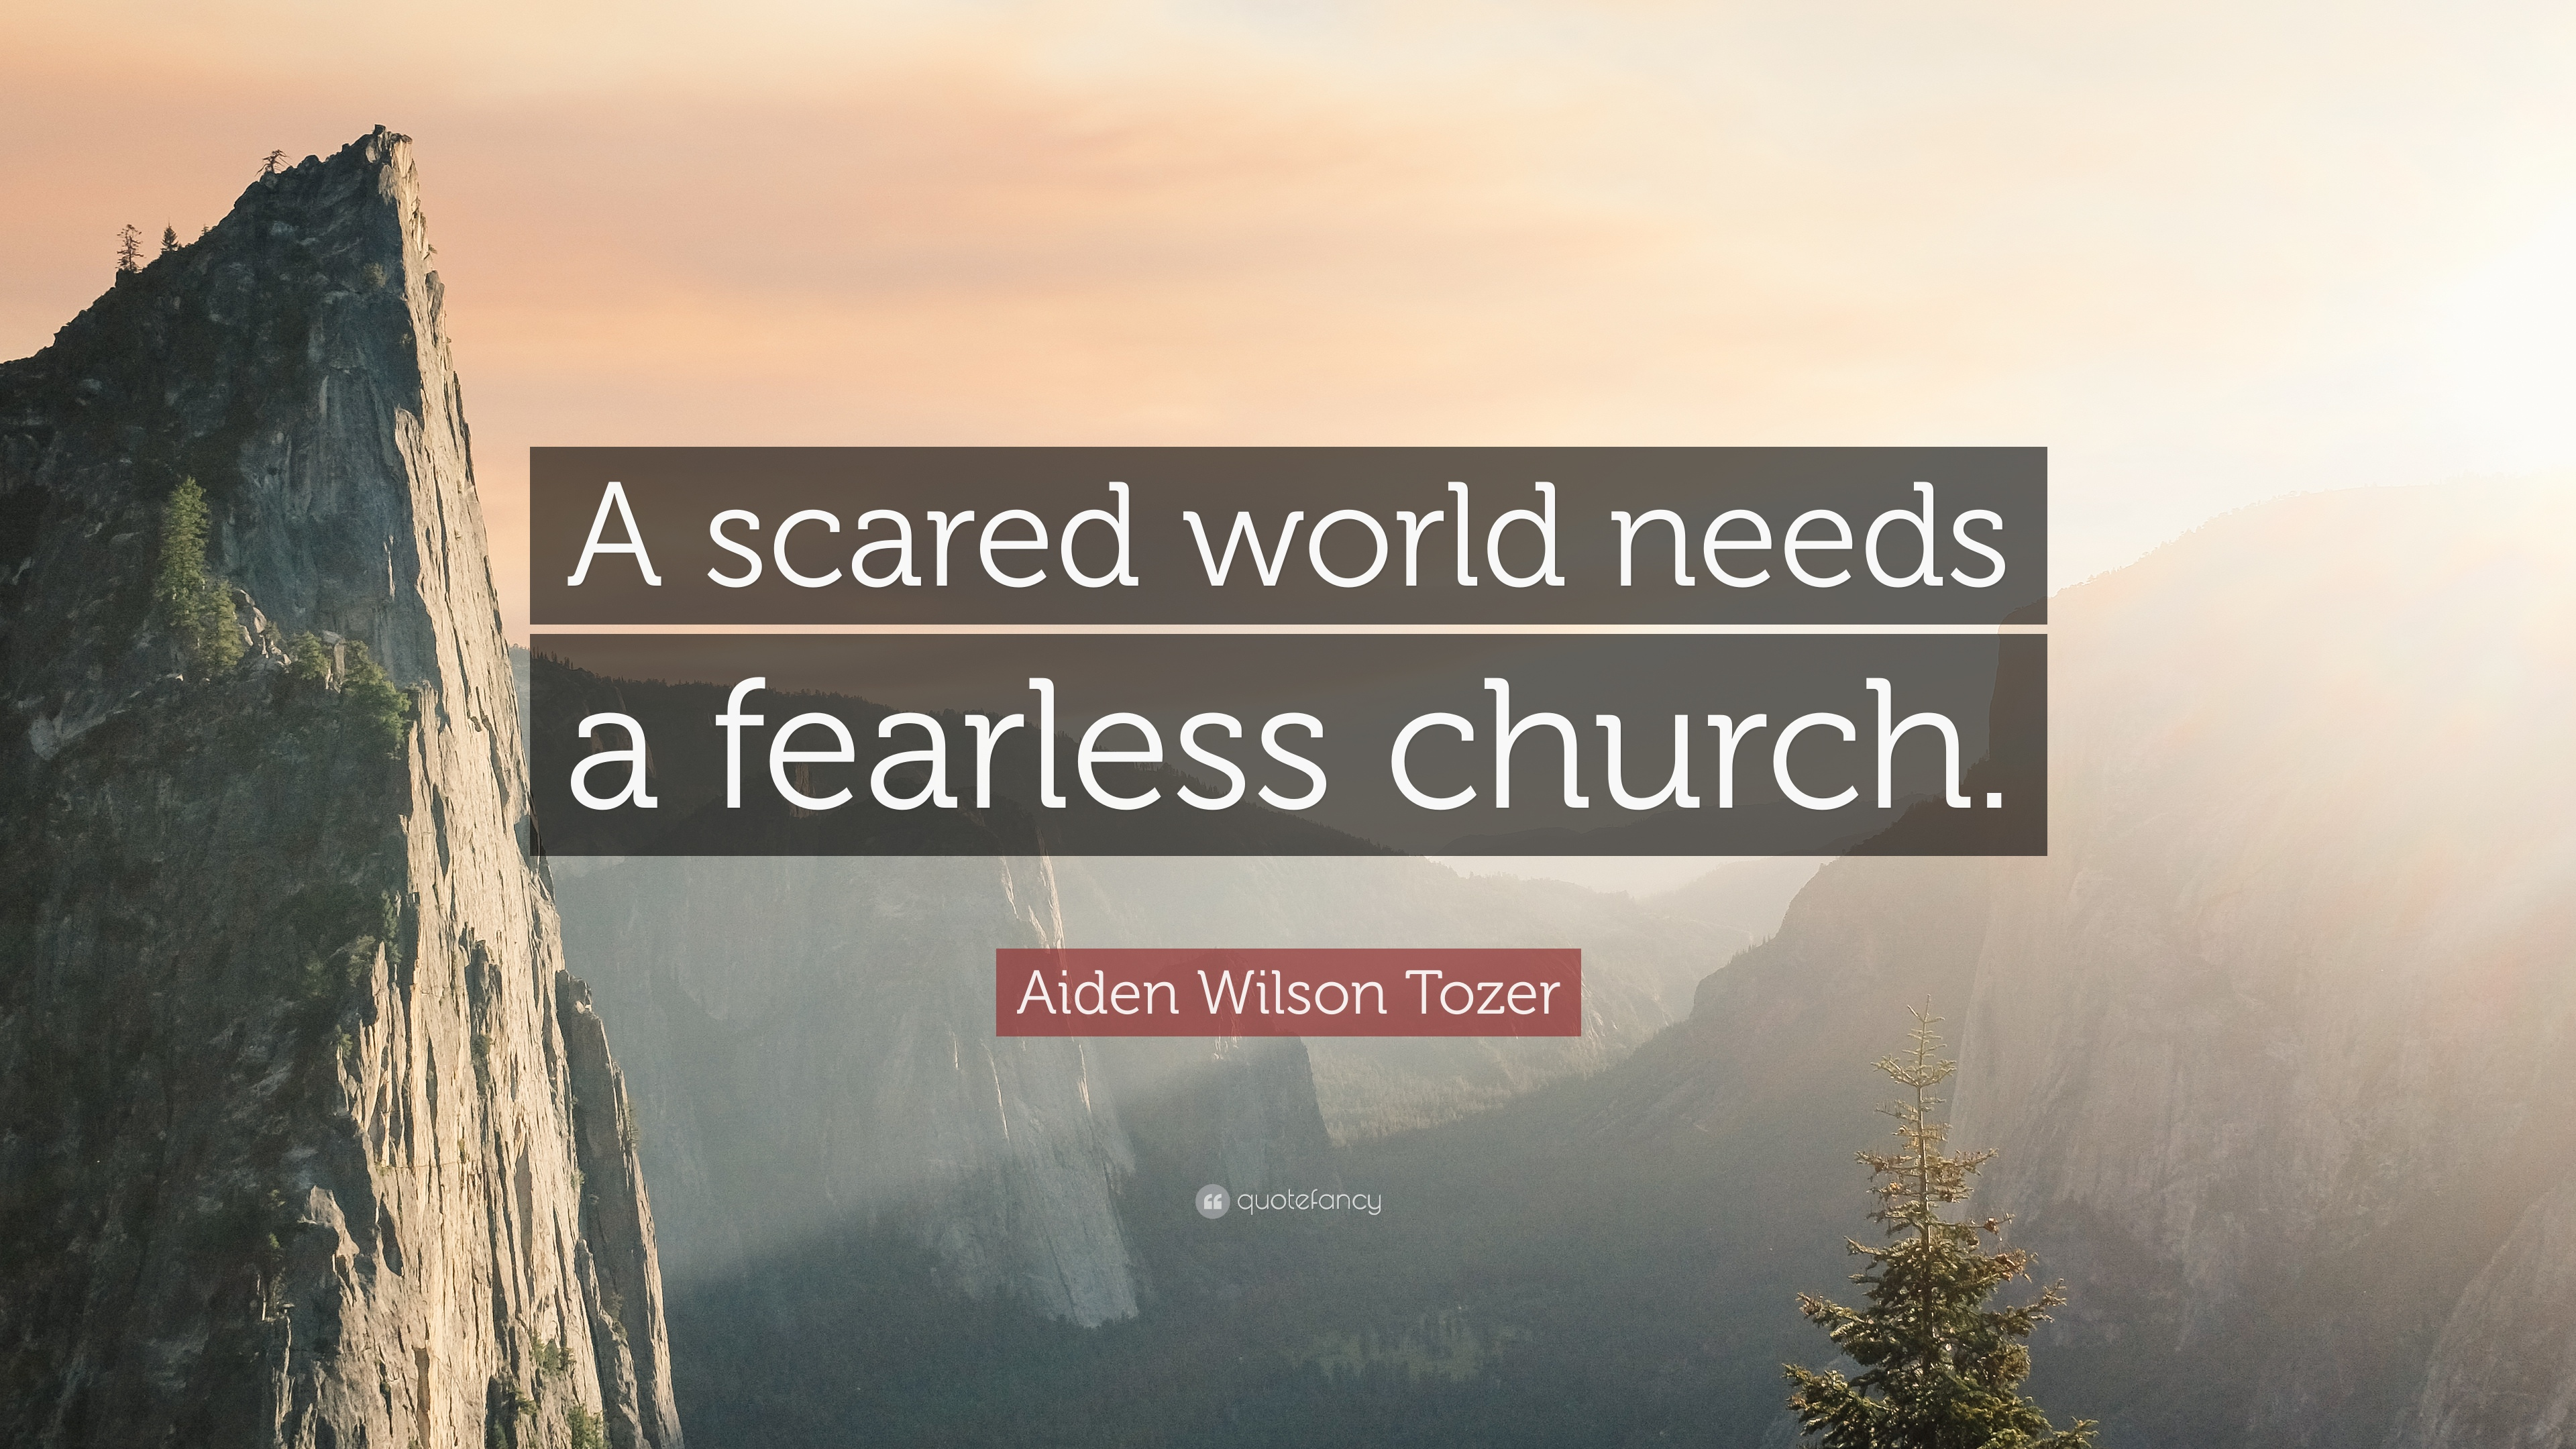 """A scared world needs a fearless church."" - A.W. Tozer"